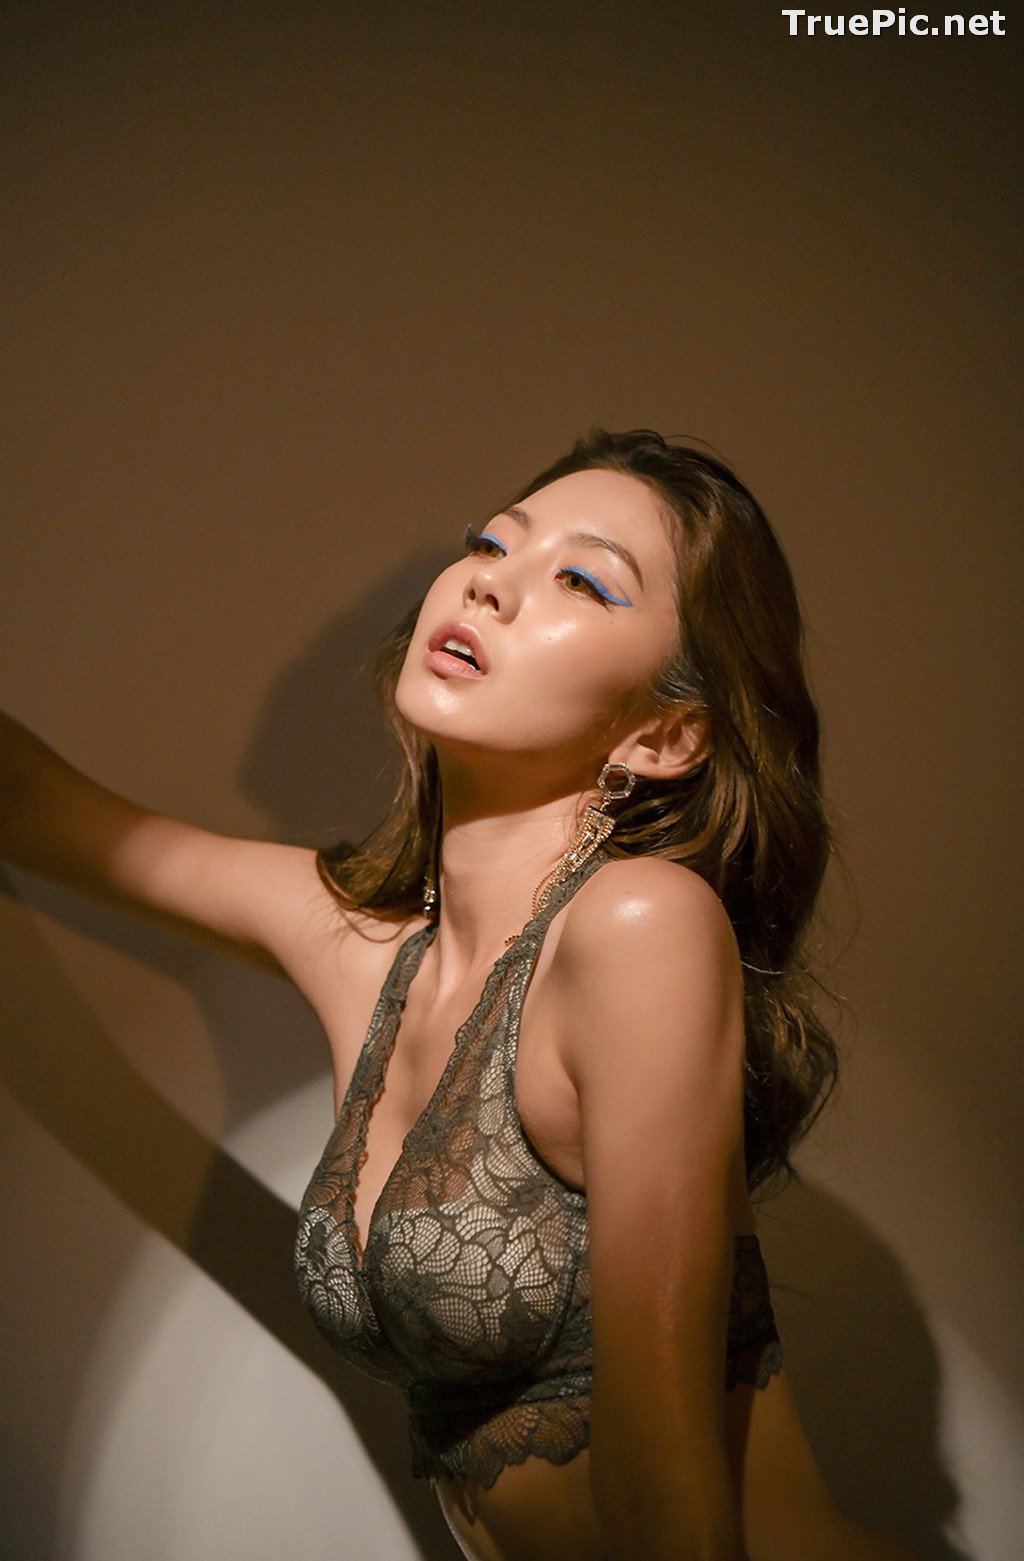 Image Korean Fashion Model - Lee Chae Eun - Soft Brown Lingerie - TruePic.net - Picture-5